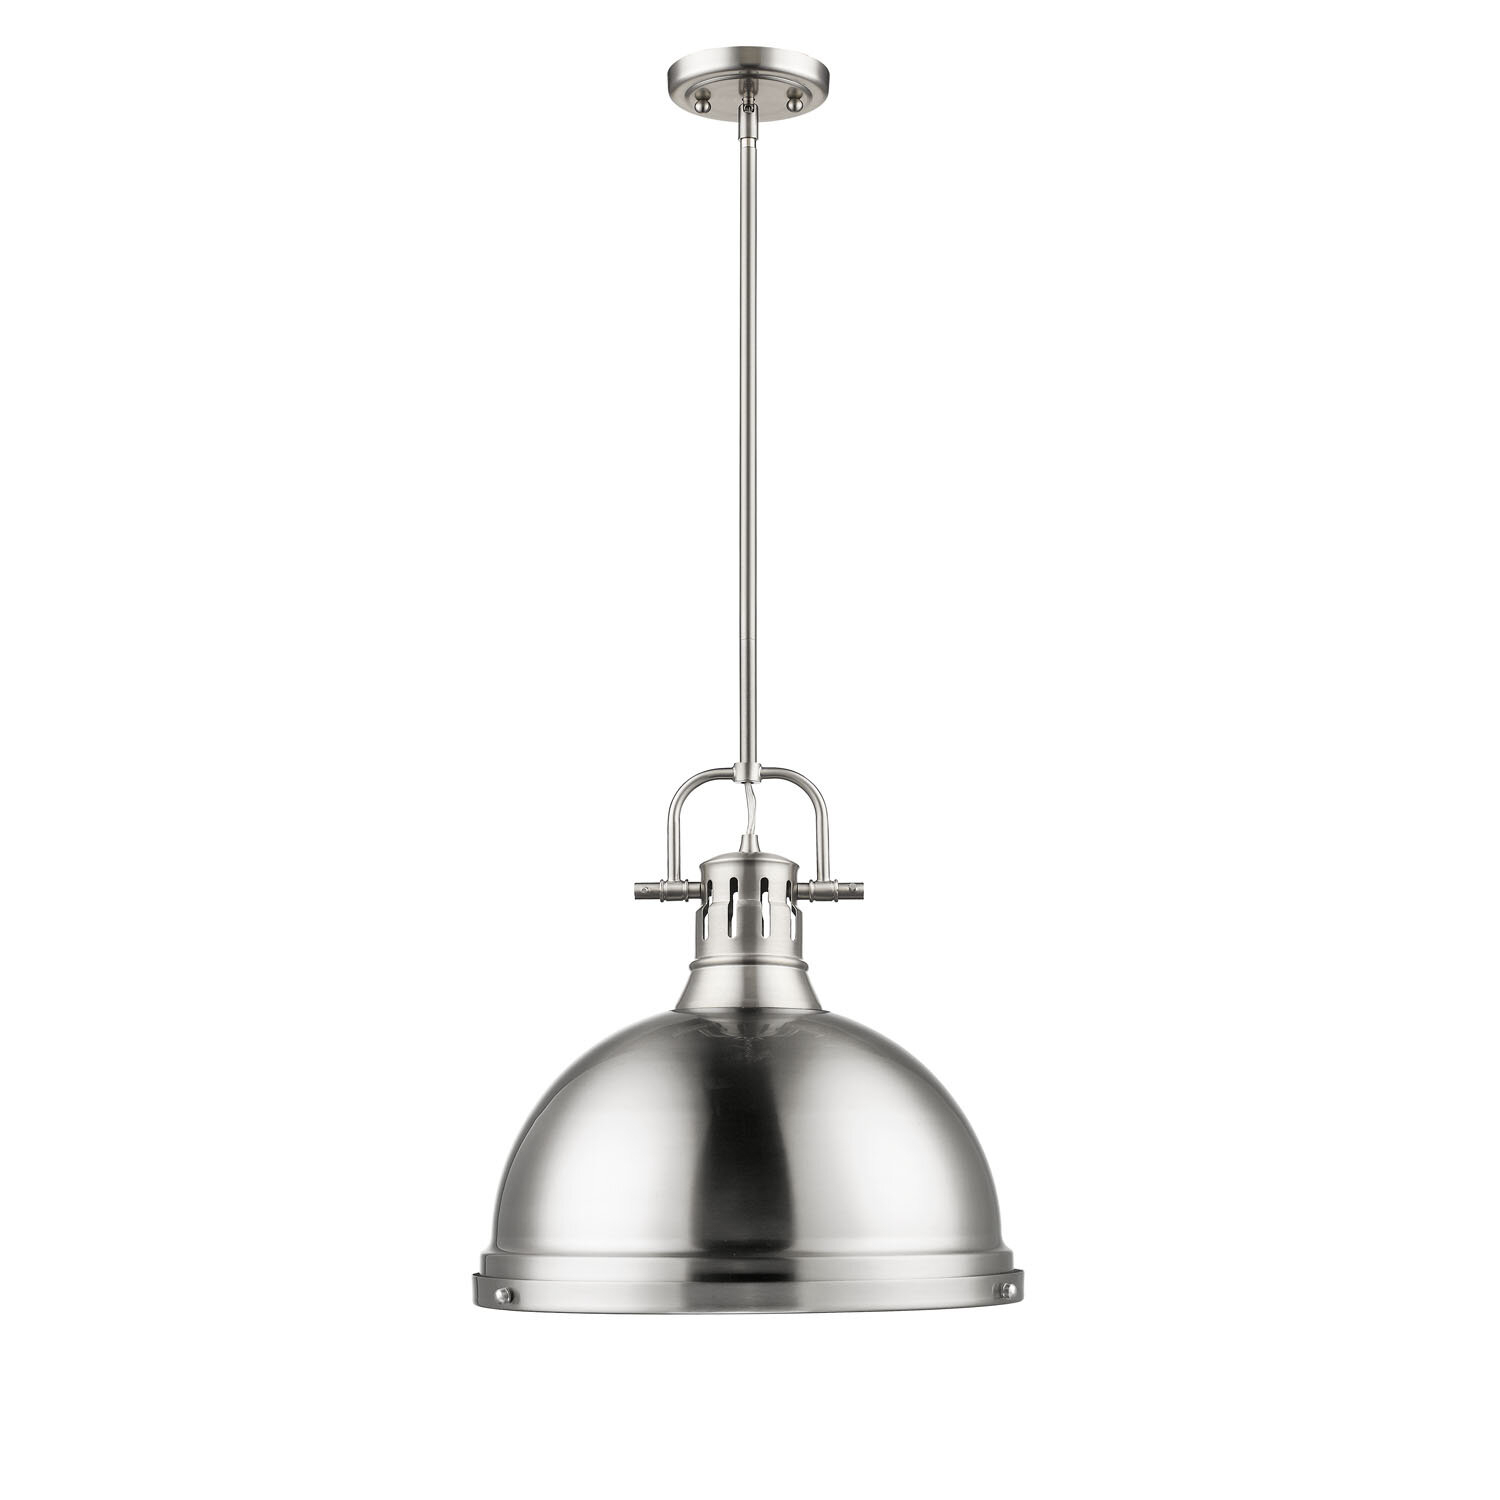 Bodalla 1 Light Single Dome Pendant & Reviews | Birch Lane With Bodalla 1 Light Single Bell Pendants (View 12 of 30)